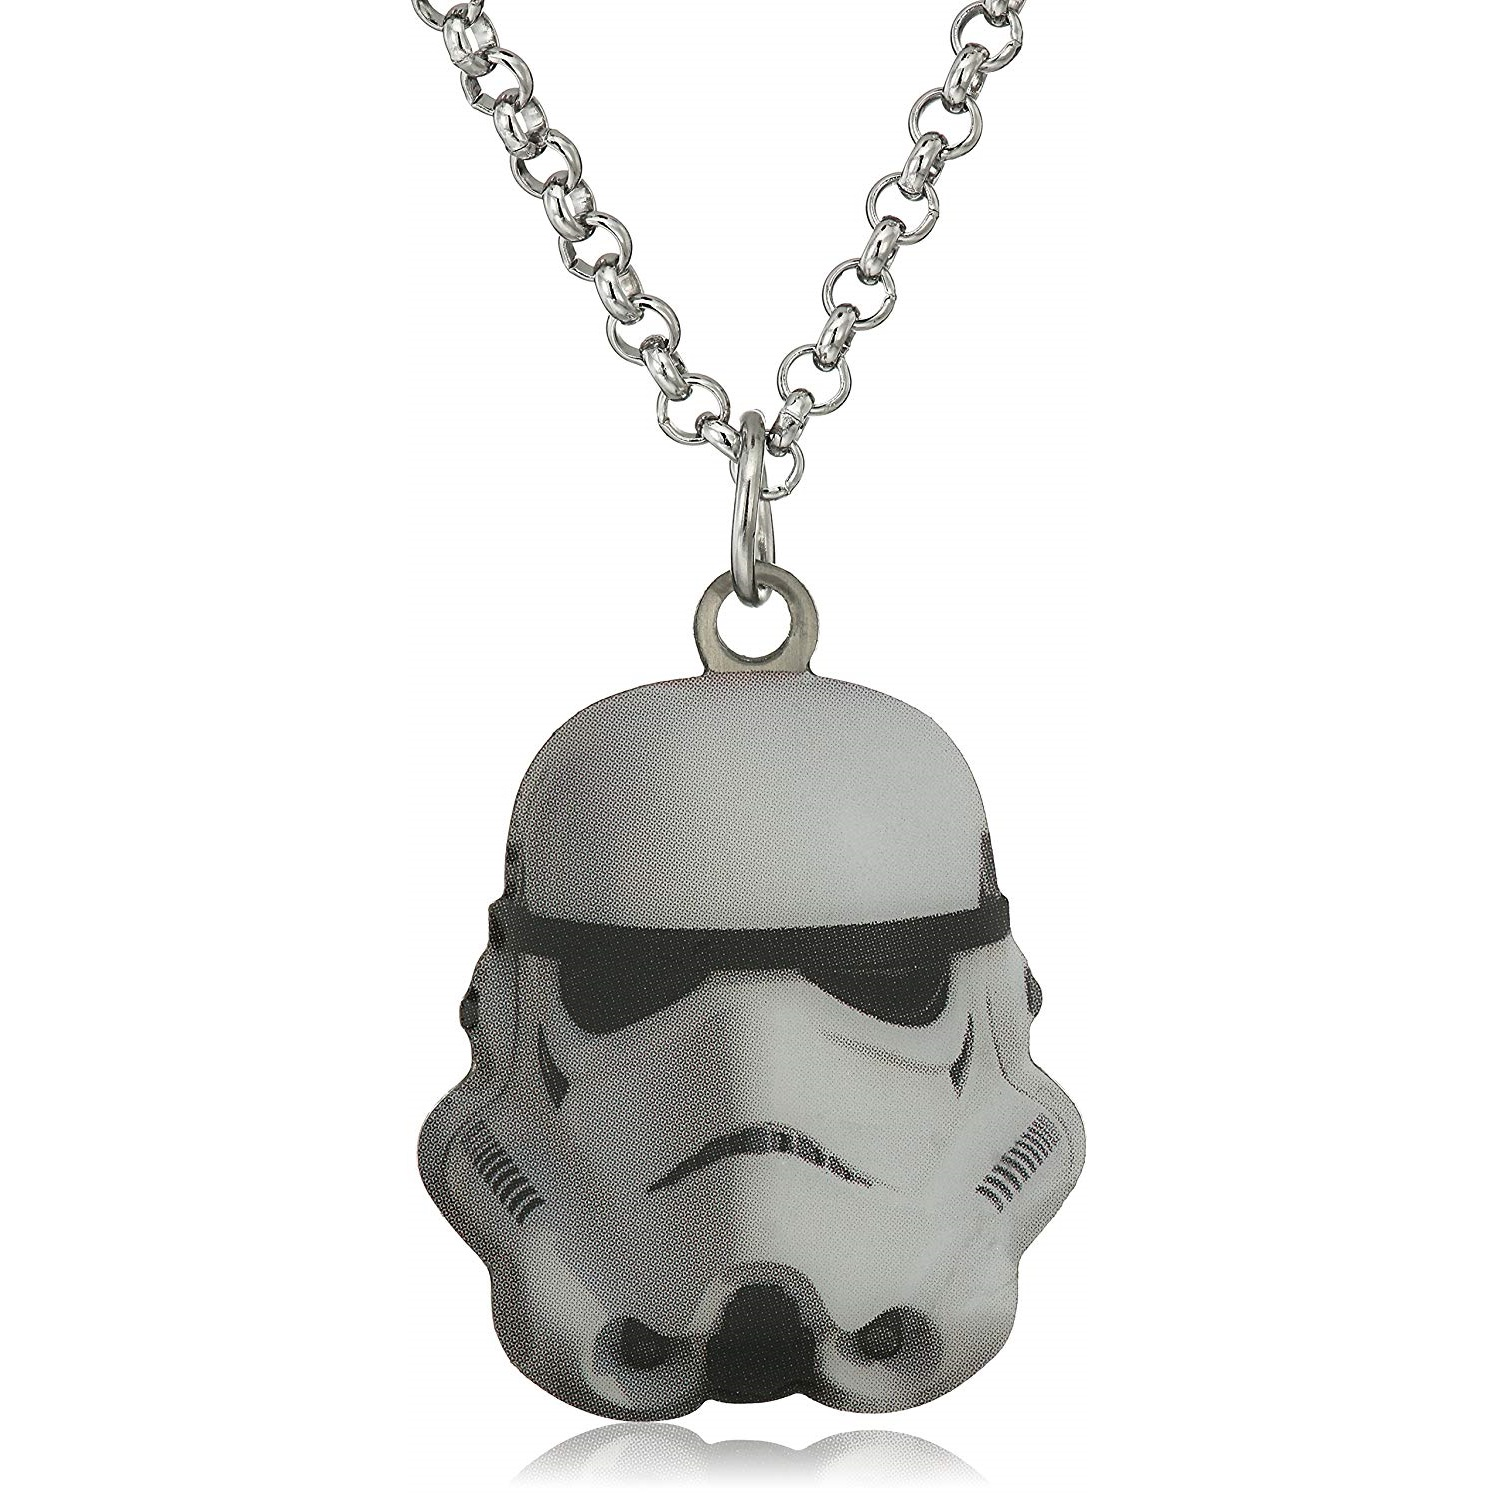 Body Vibe x Star Wars Stormtrooper Cut Out Pendant Necklace on Amazon